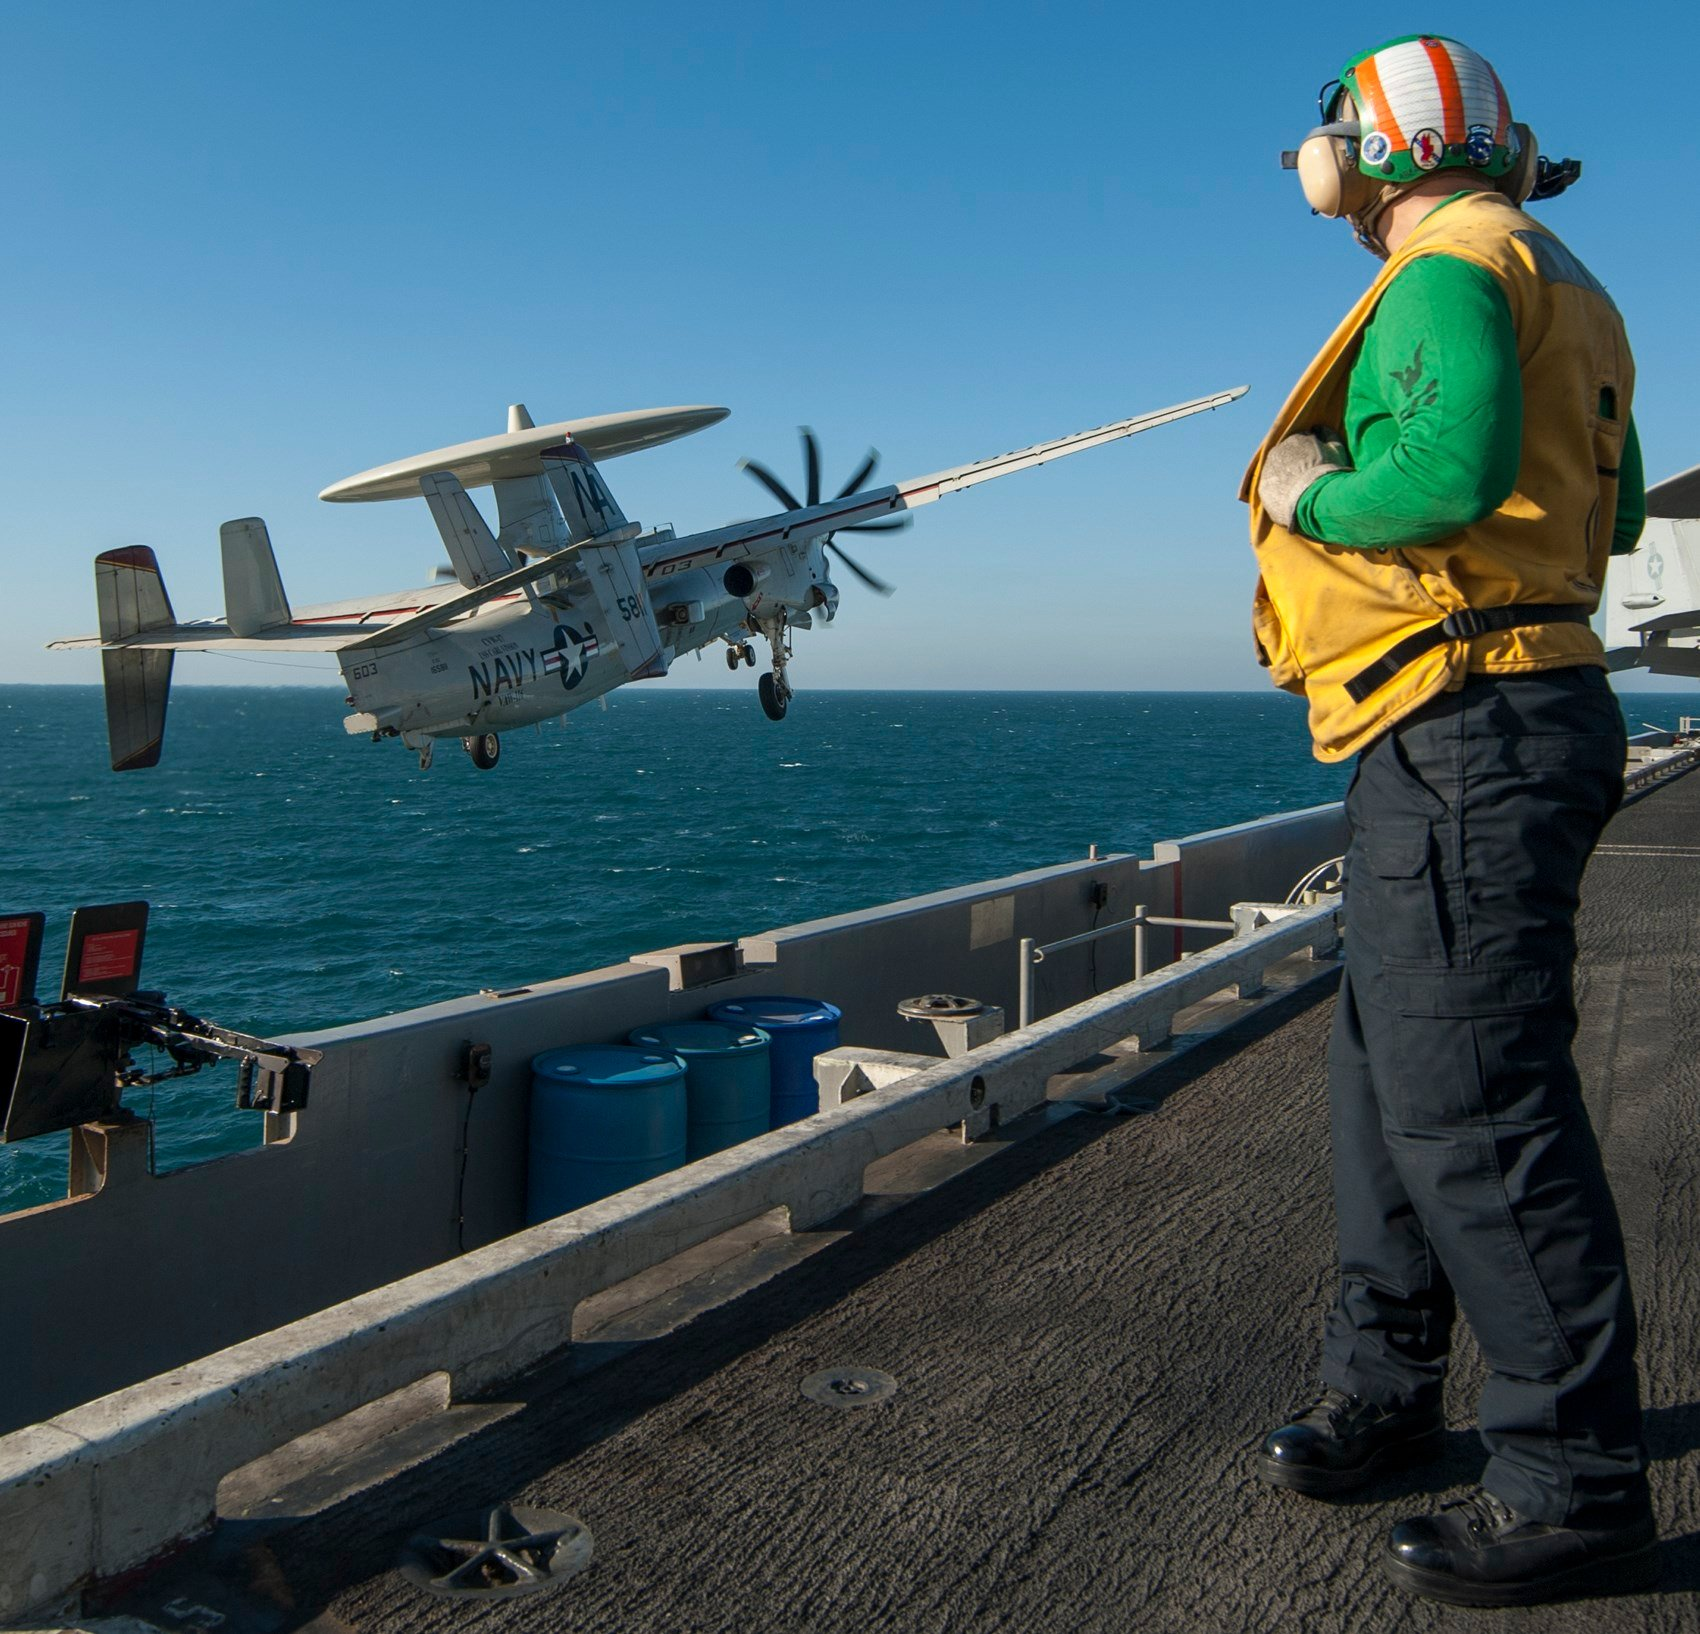 (U.S. Navy photo by Mass Communication Specialist 2nd Class John Philip Wagner, Jr./Released)